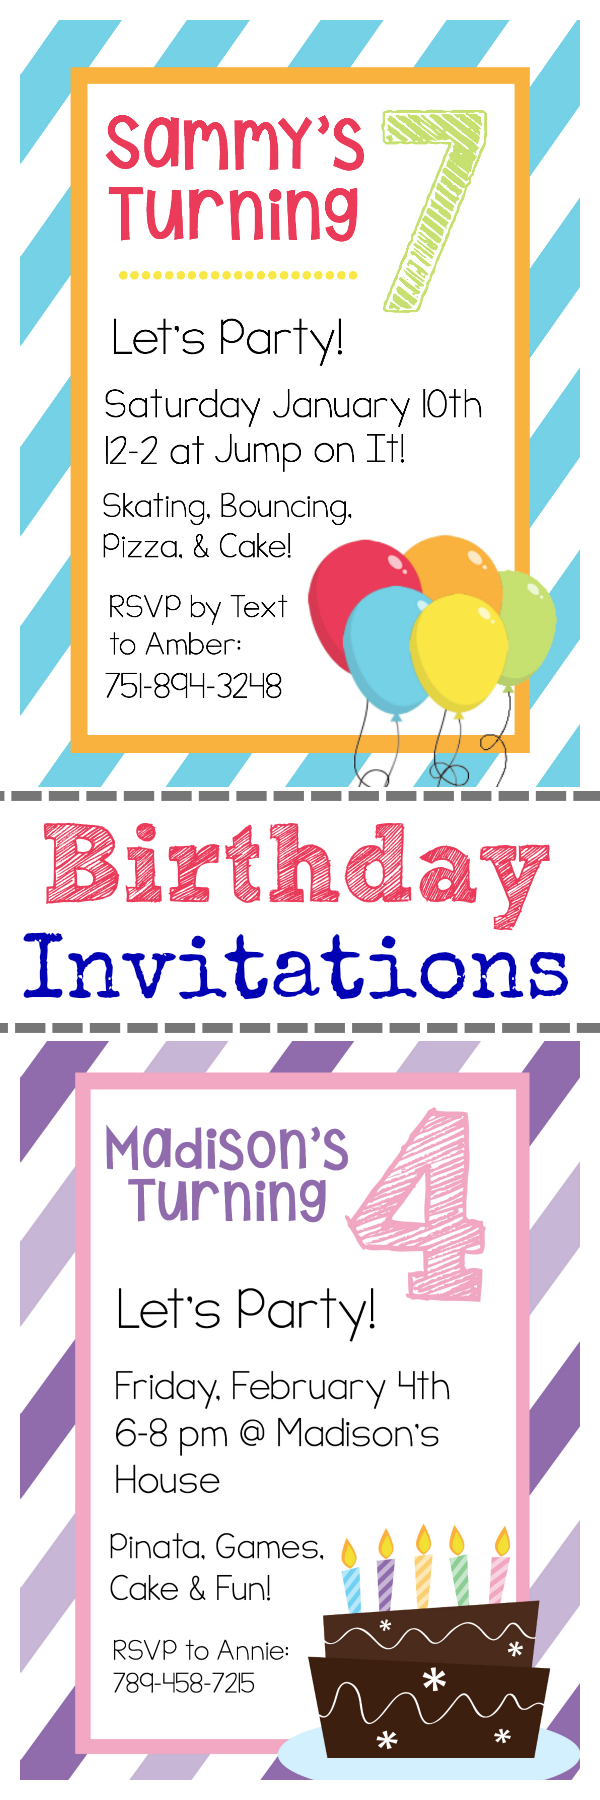 Free Printable Birthday Invitation Templates - Free Printable Boy Birthday Invitations